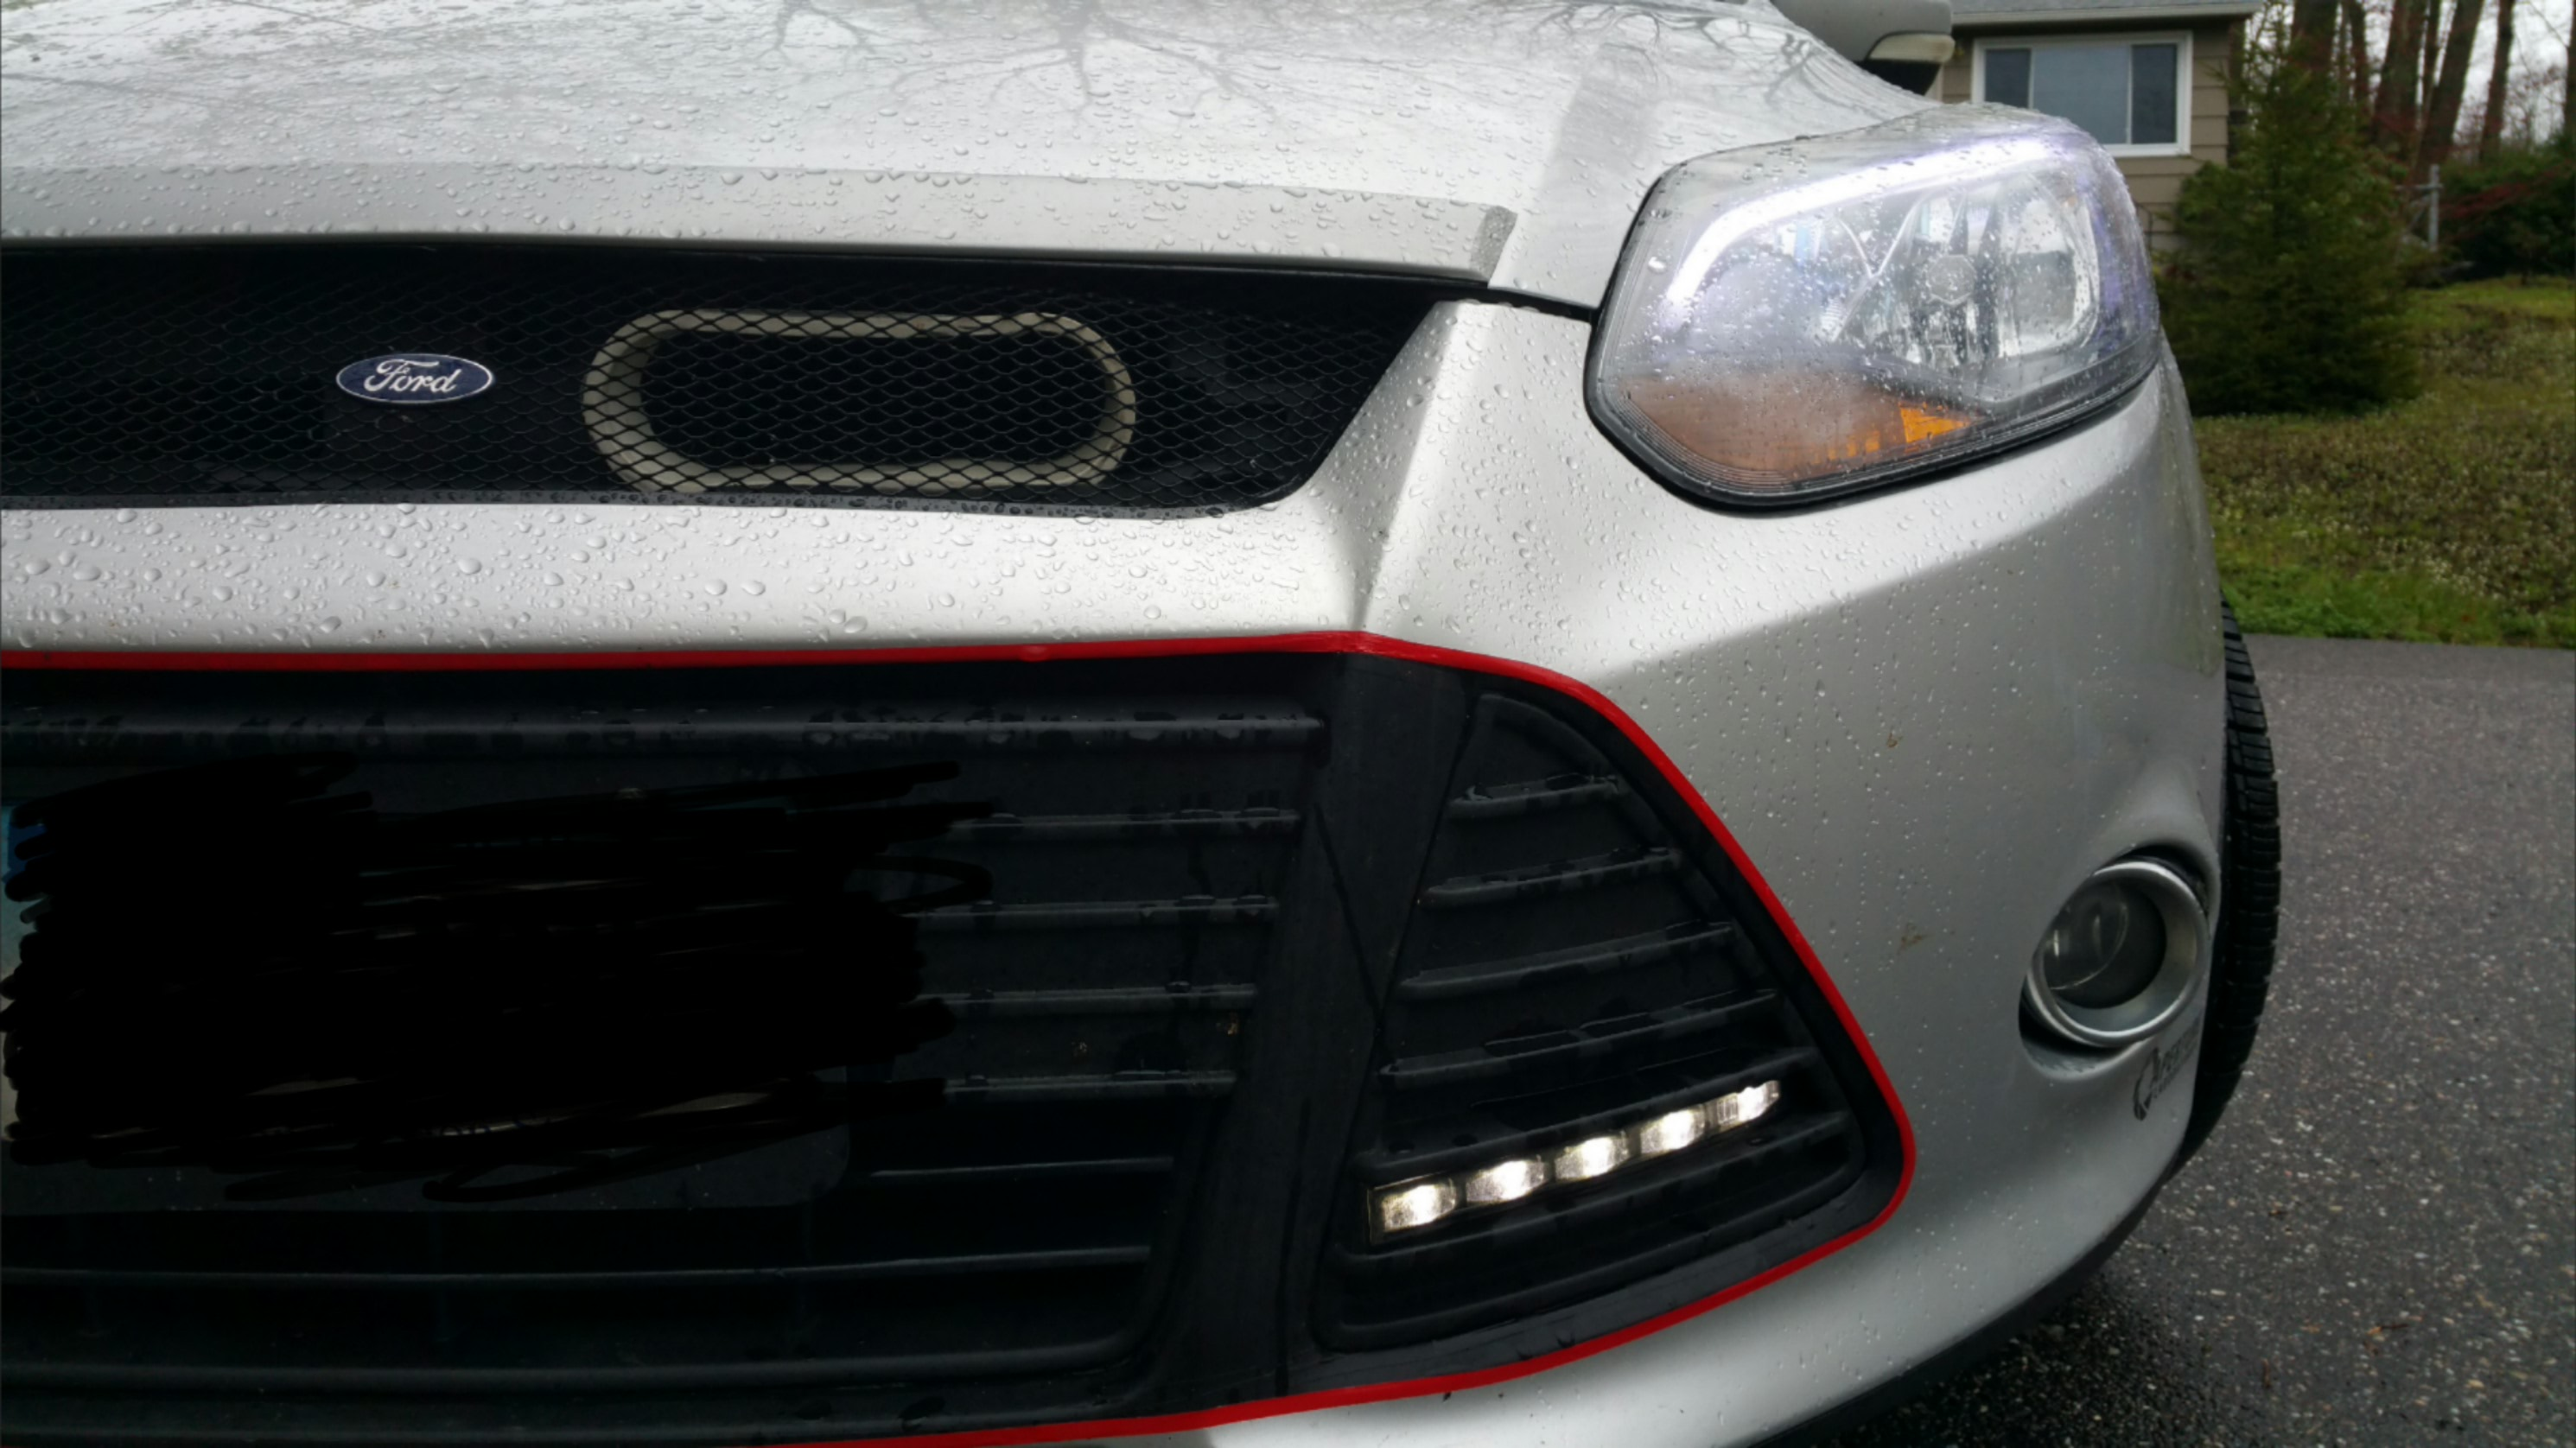 2012+ Focus Aftermarket Parts & Mods Info Thread.-front-close.jpg